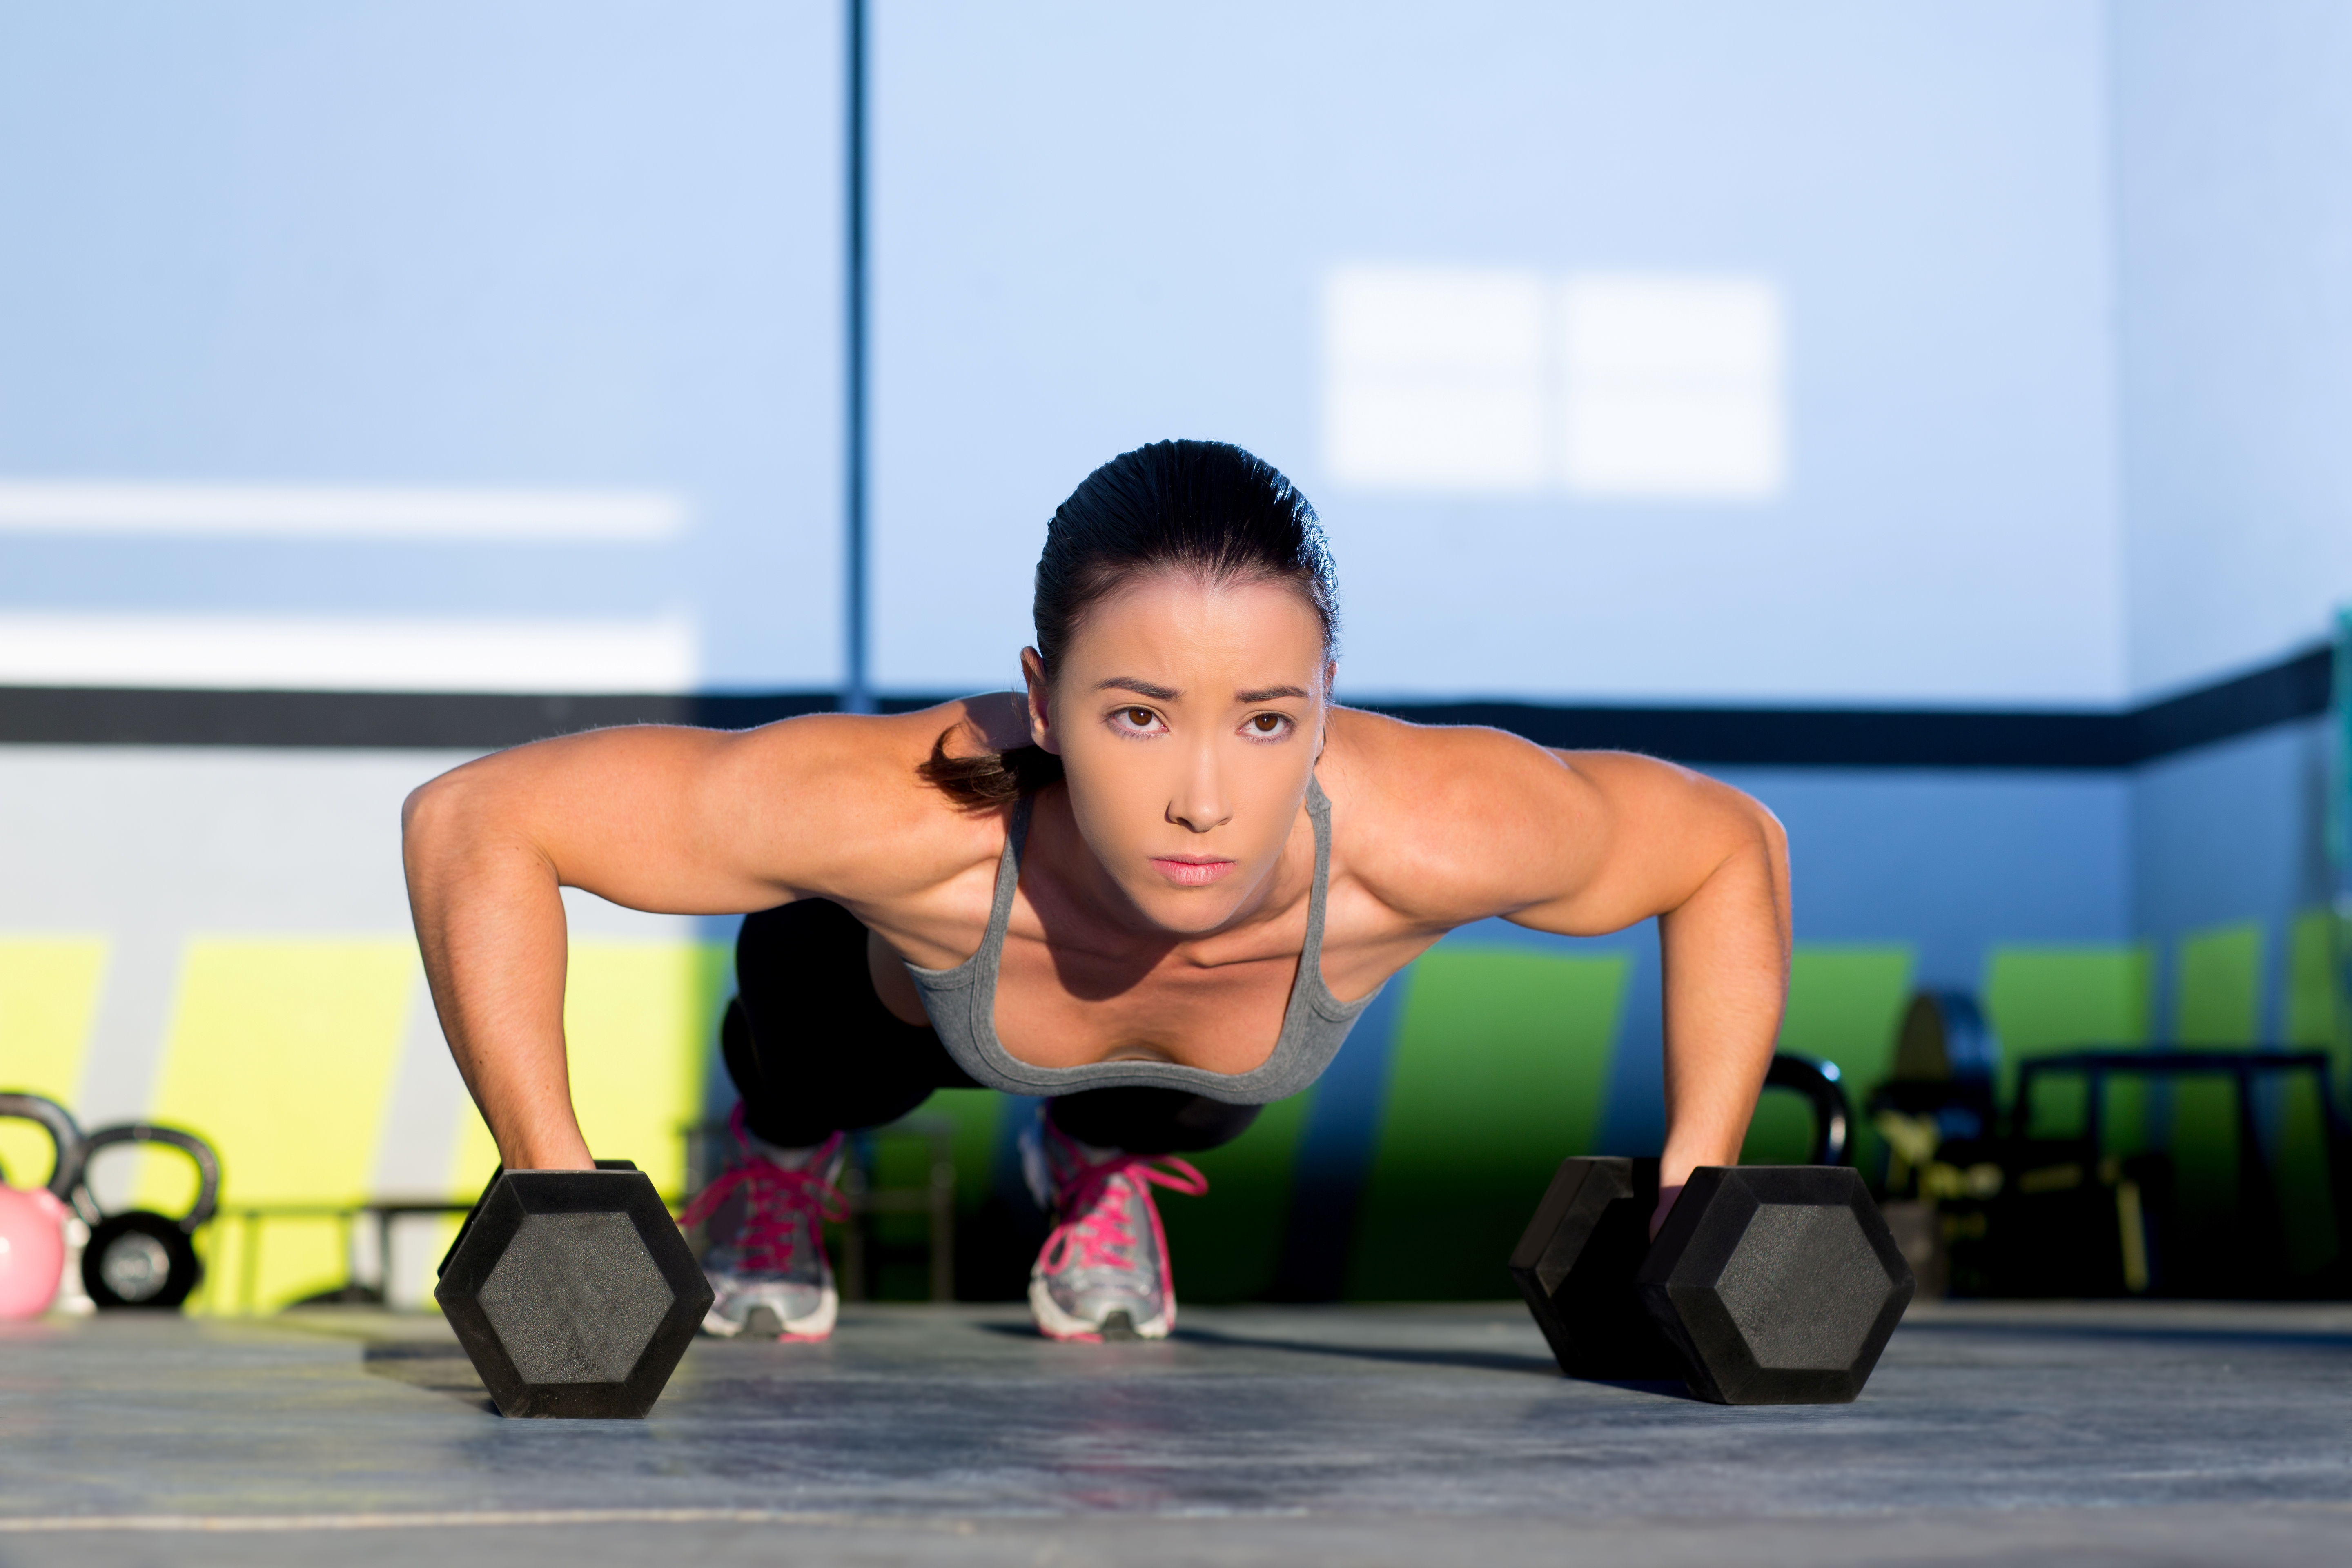 Weekend Workouts And Your Health